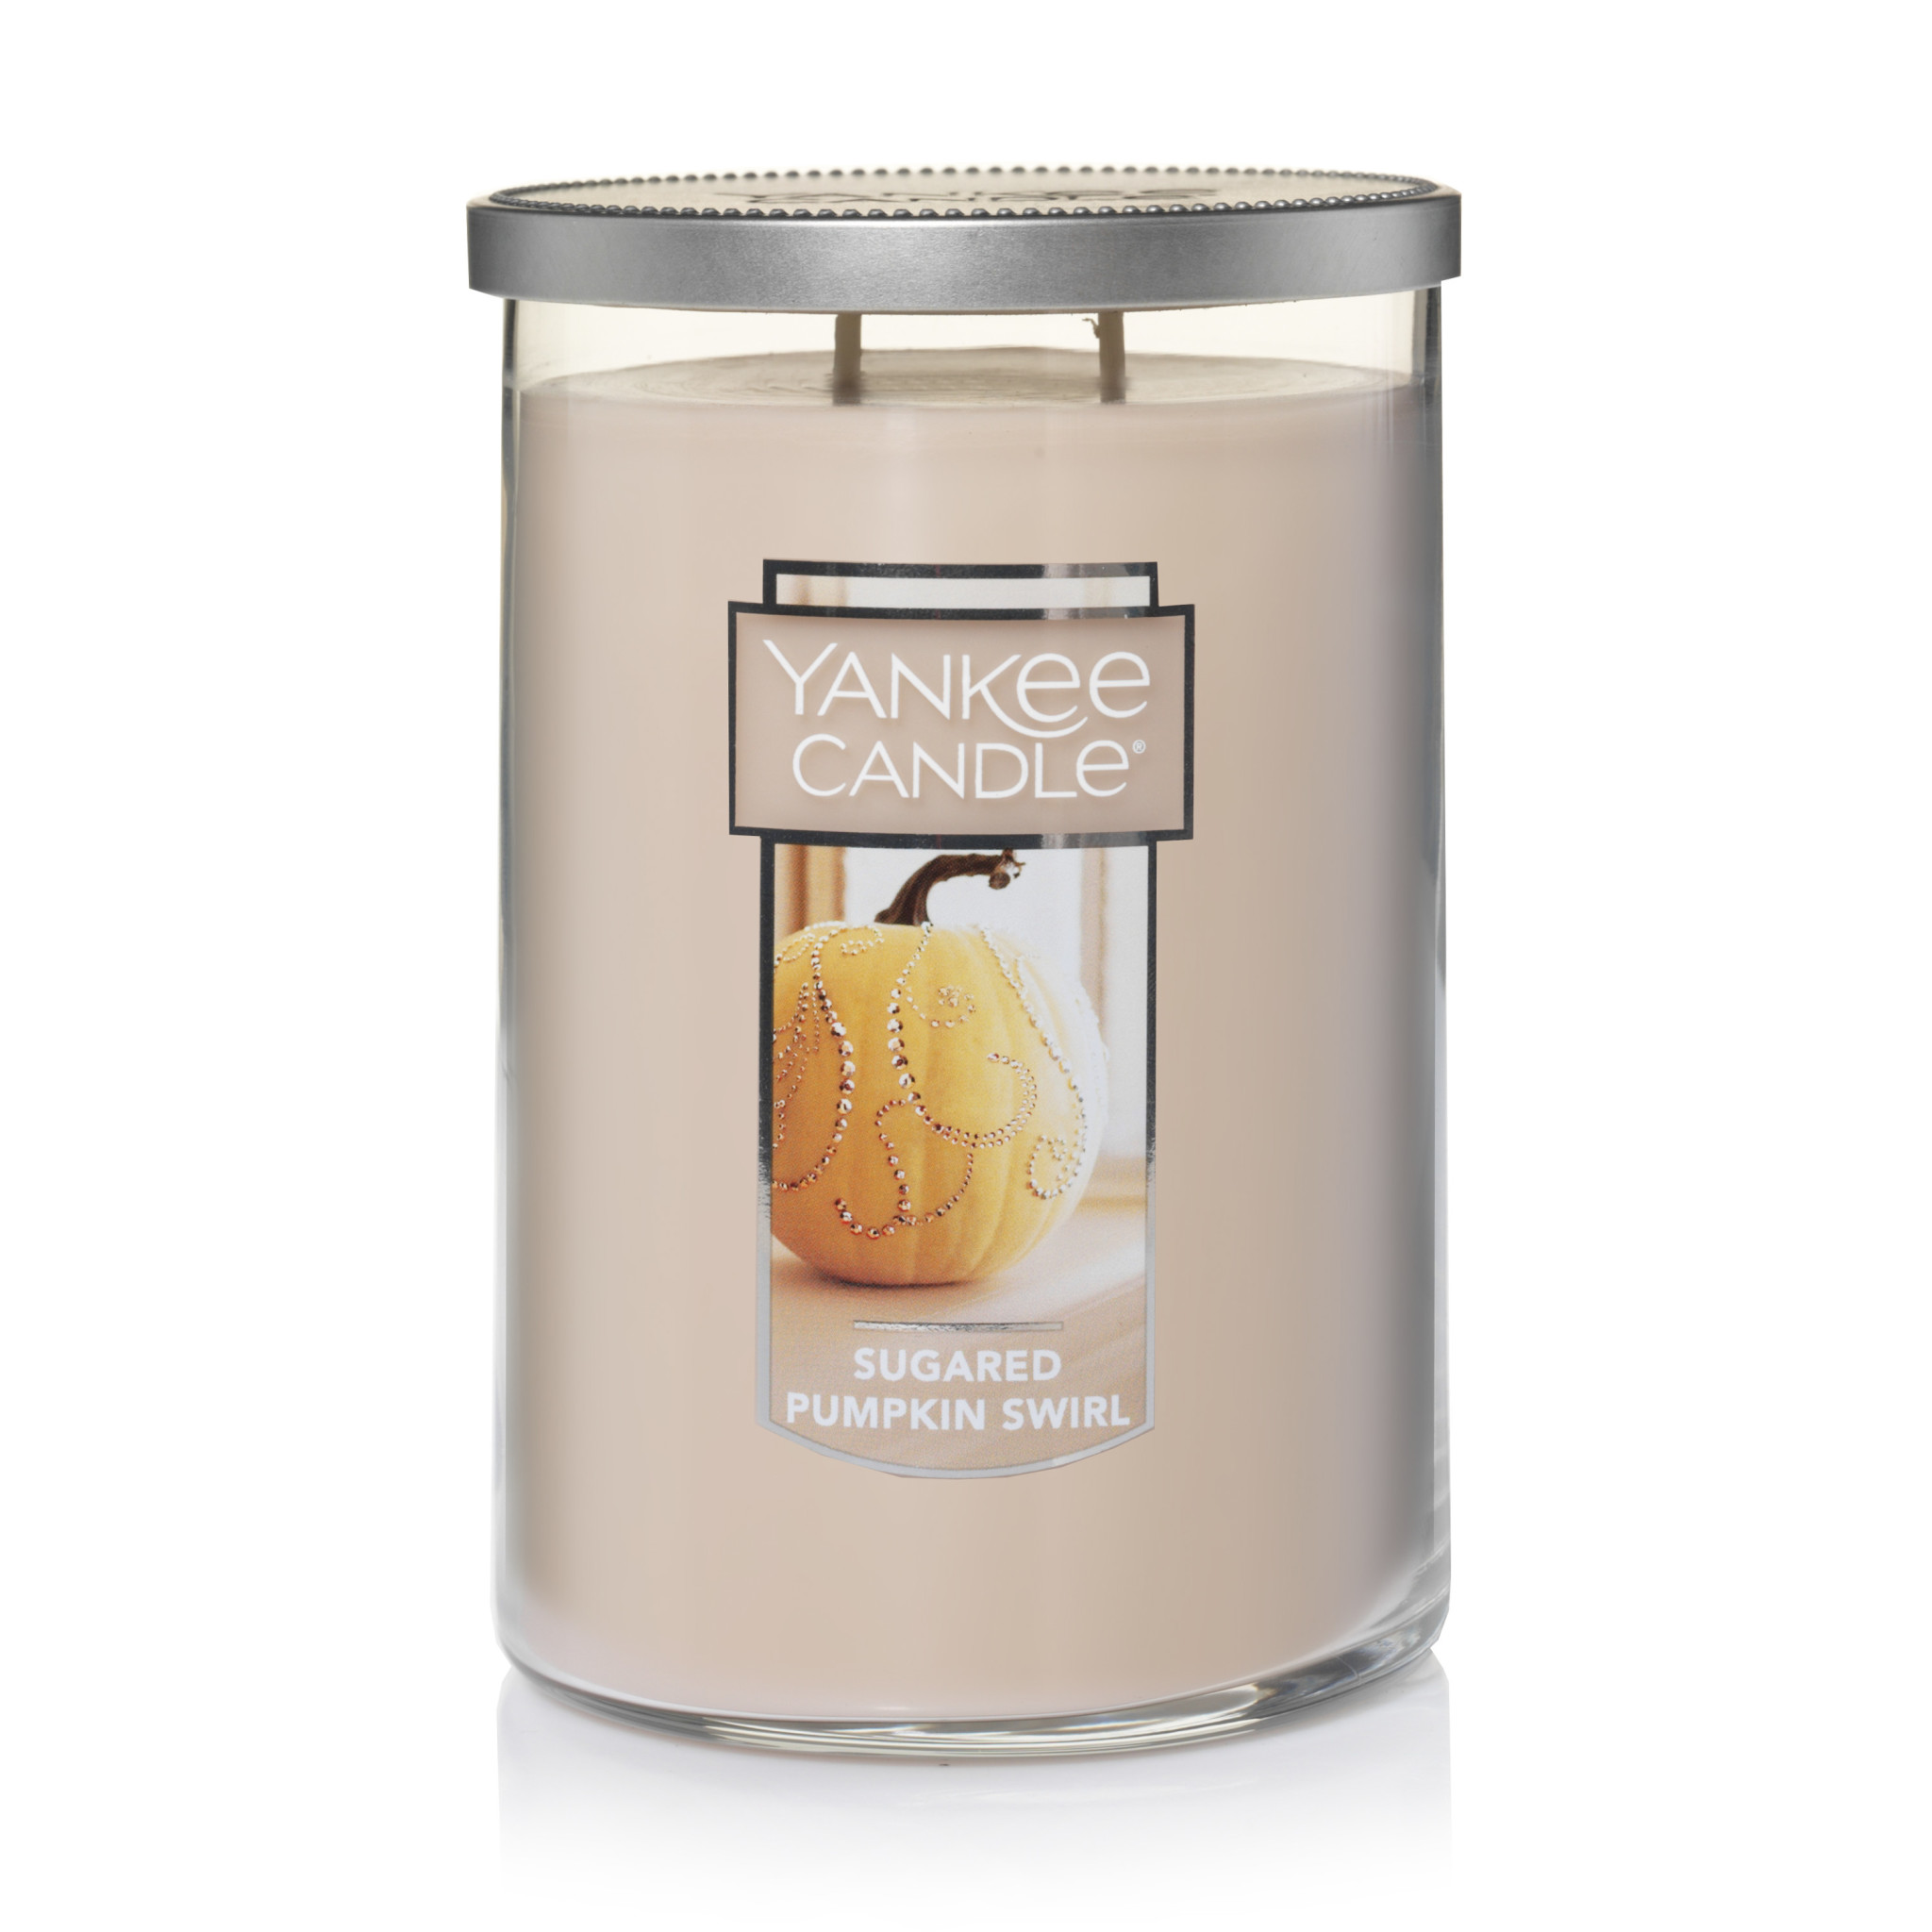 Yankee Candle Large 2-Wick Tumbler Candle, Sugar Pumpkin Swirl by Newell Brands